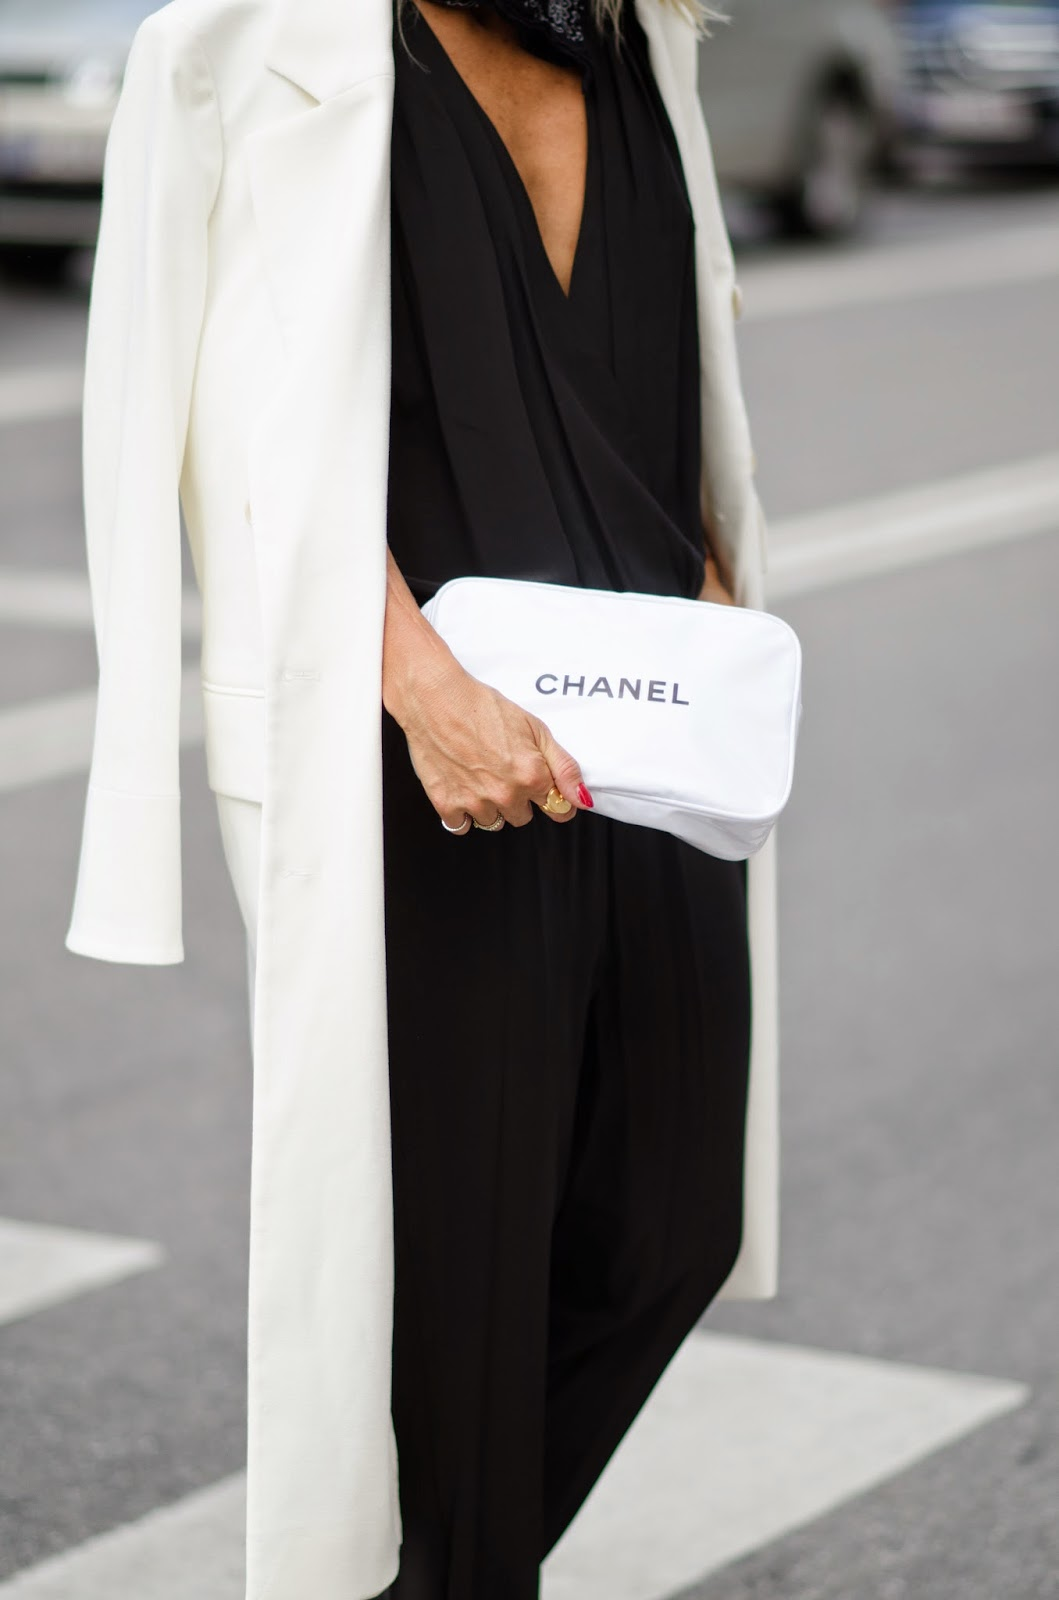 Celine Aagaard is wearing black and white at Copenhagen Fashion Week